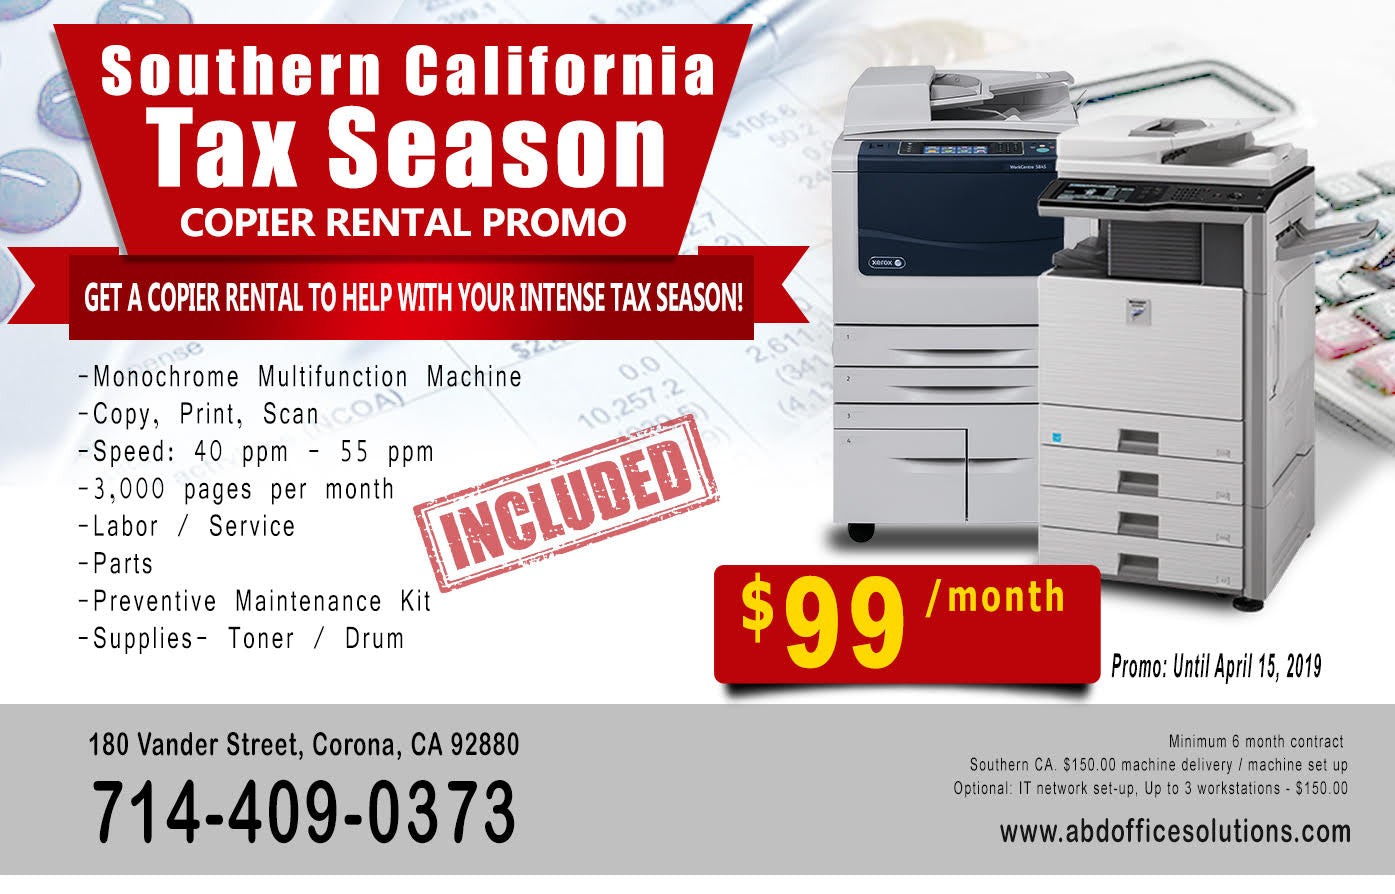 Copier Rental Tax Season Southern California